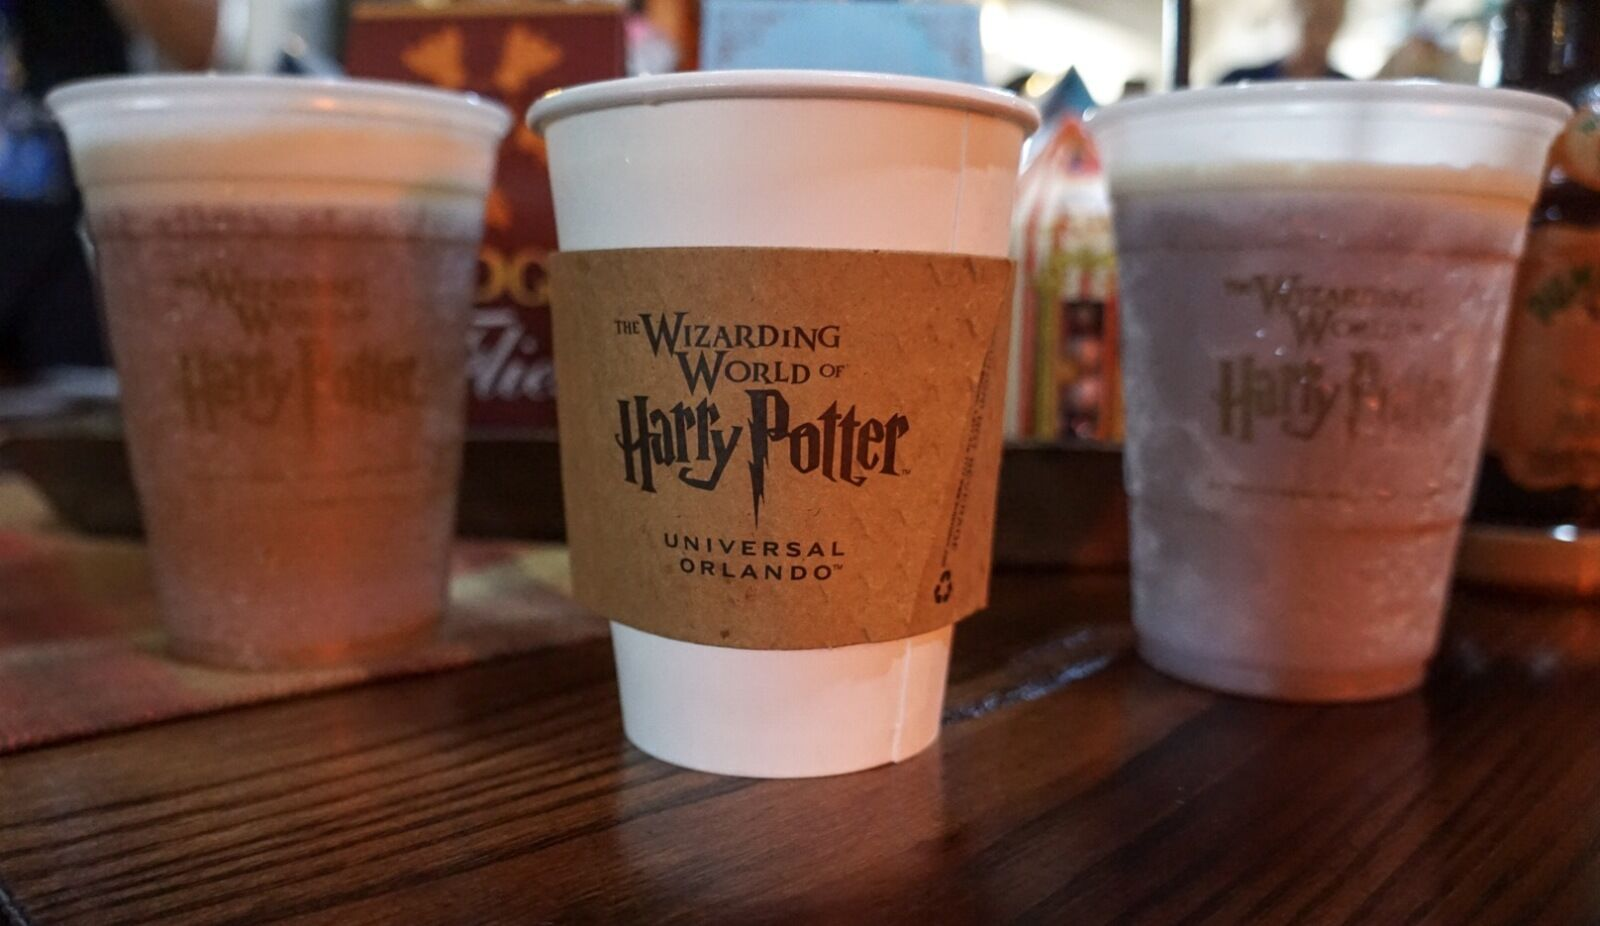 Which Butterbeer beverage best appeals to your personality?